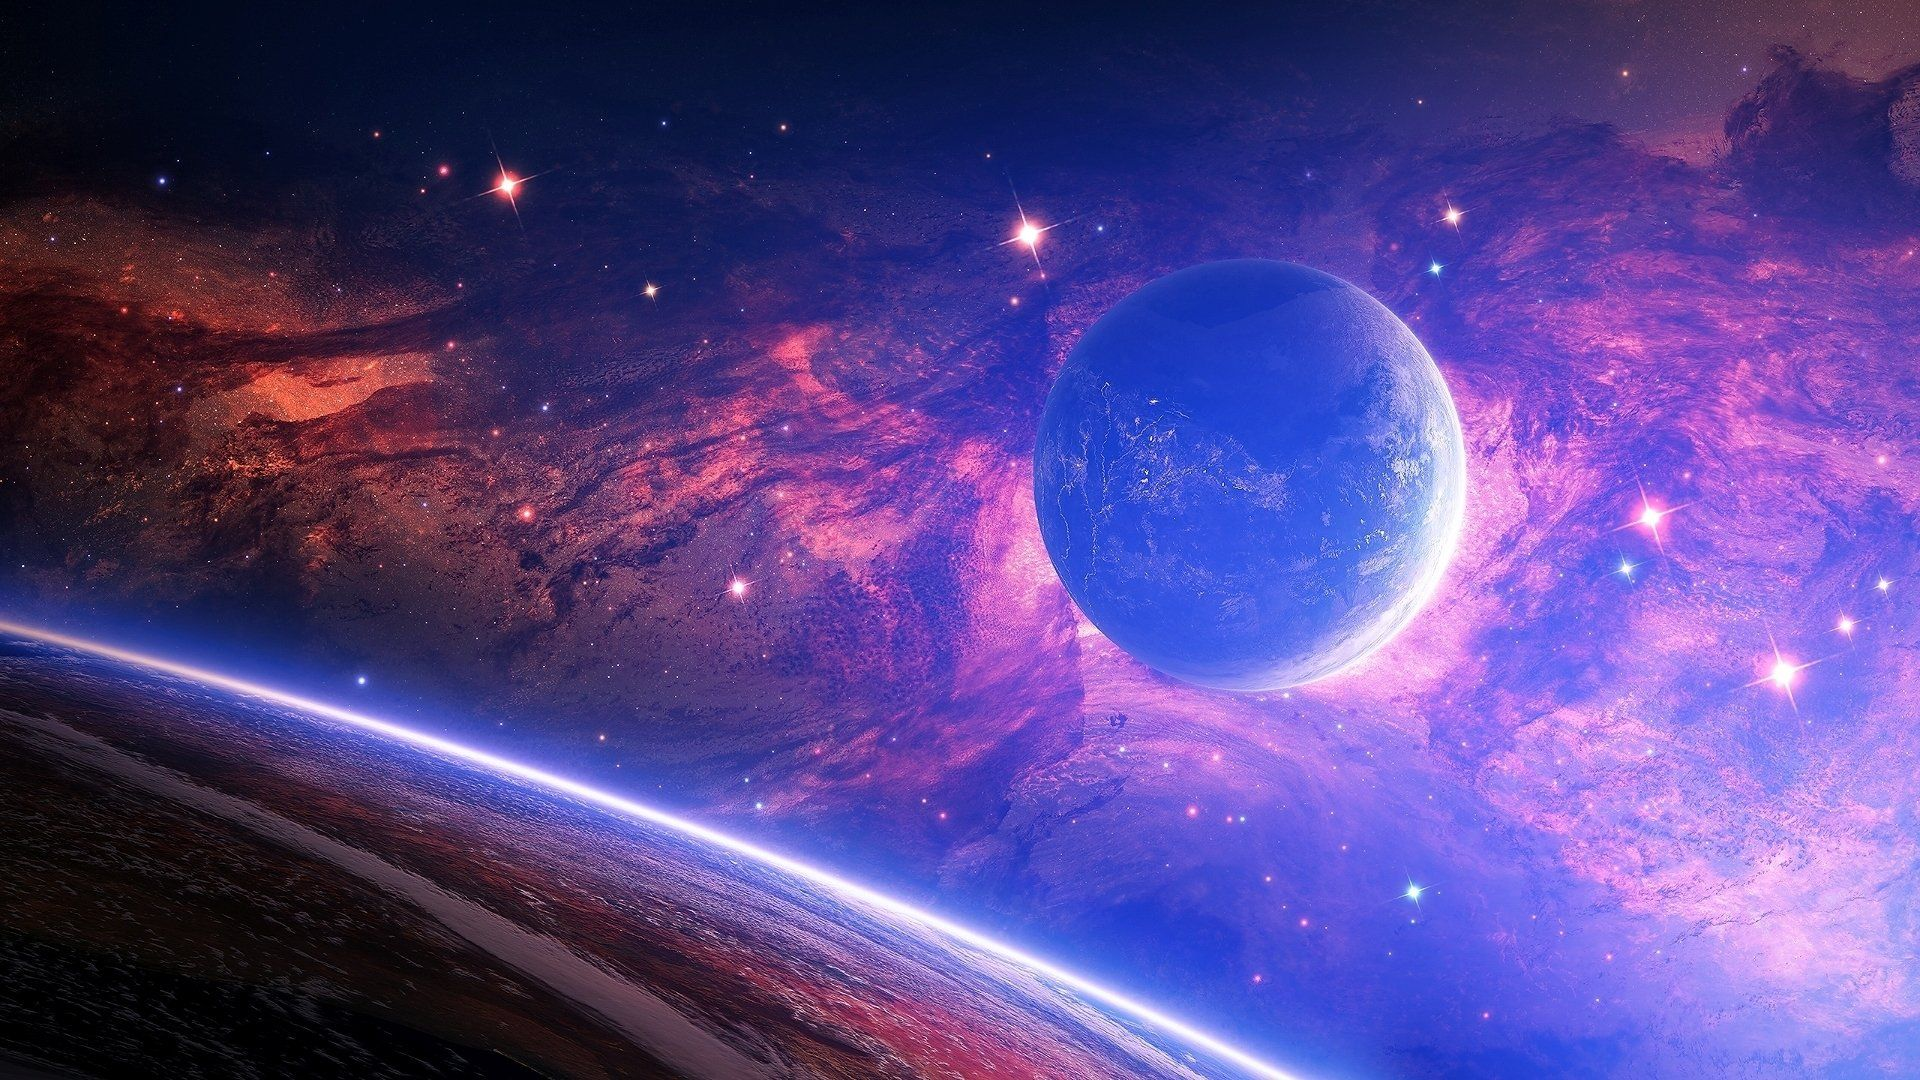 Galaxy Planet Wallpapers Top Free Galaxy Planet Backgrounds Wallpaperaccess